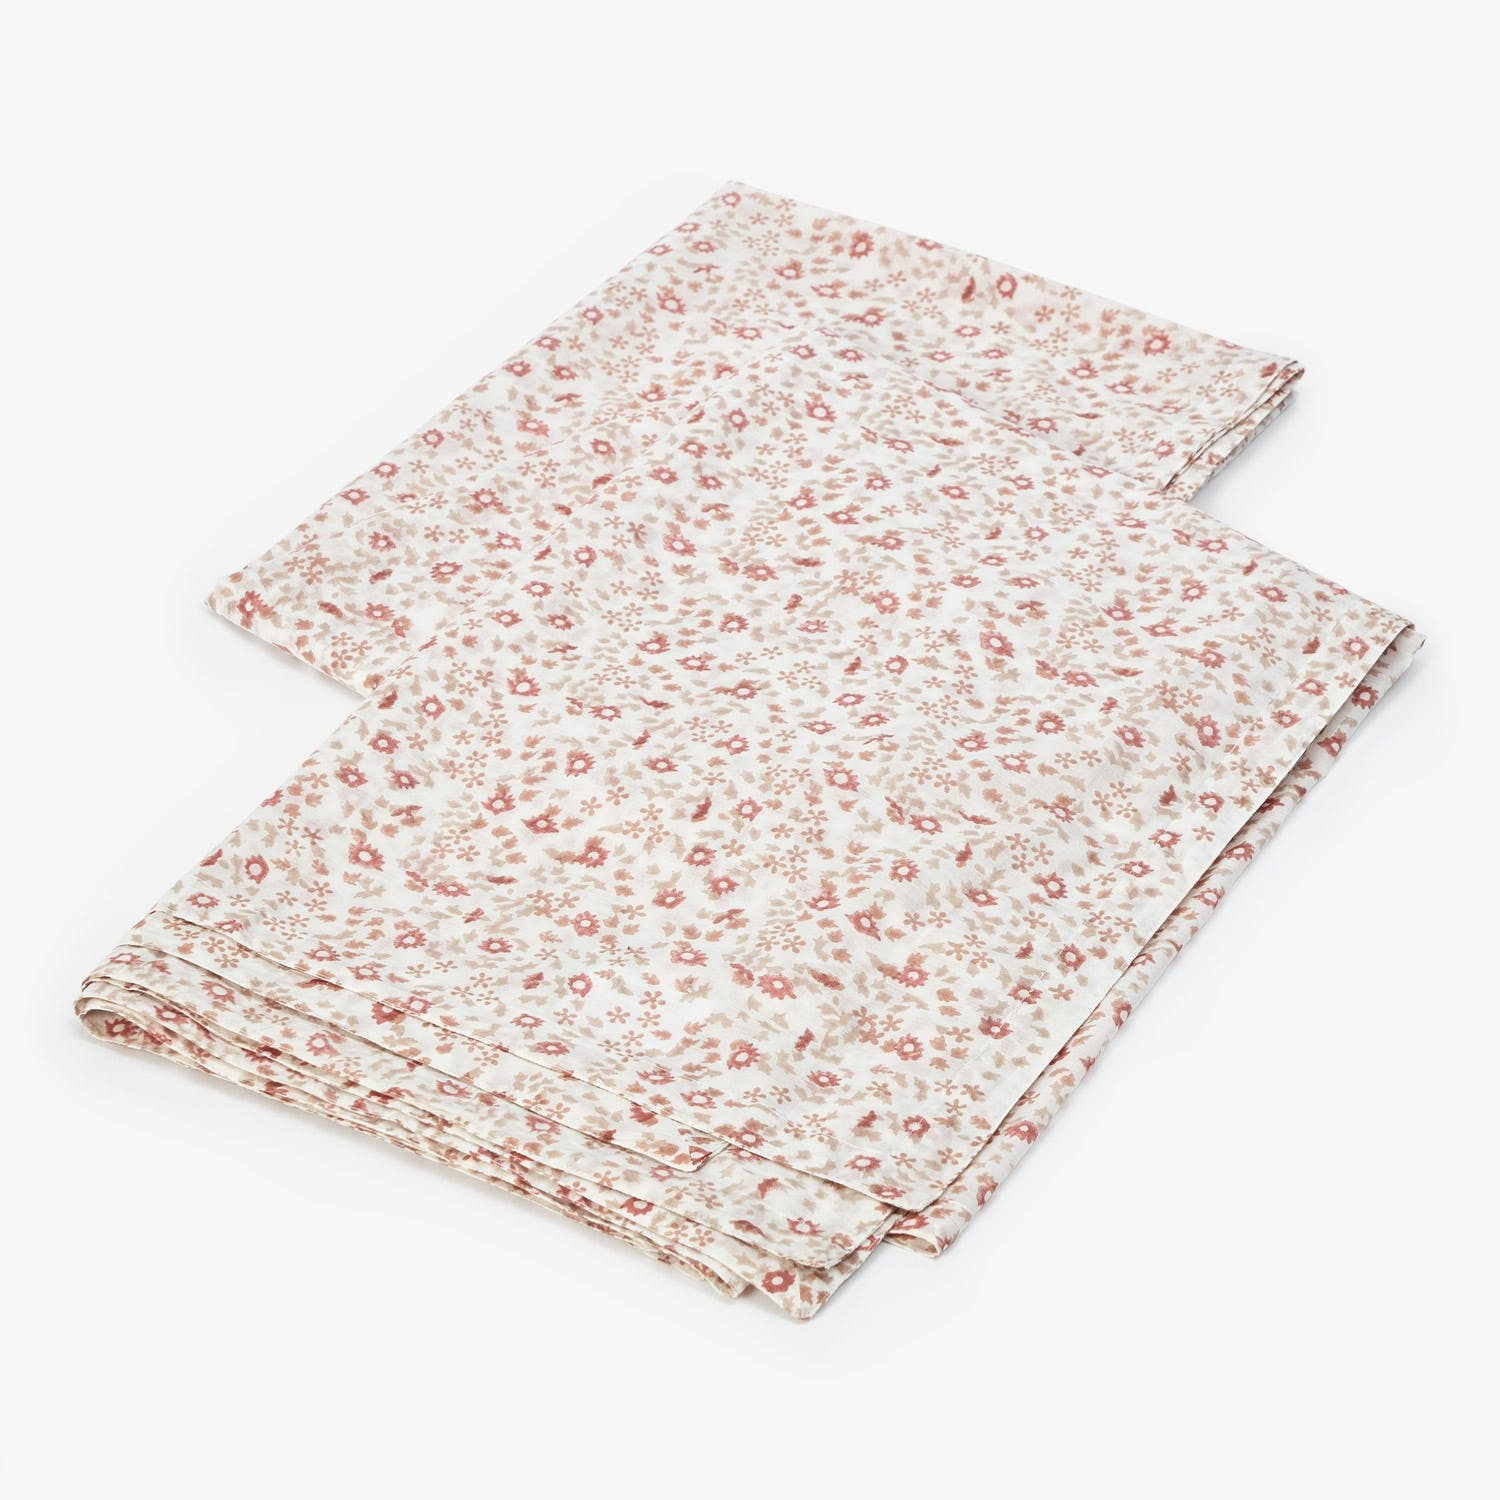 Product Image - Small Floral Cotton Voile Flat Sheet Multi